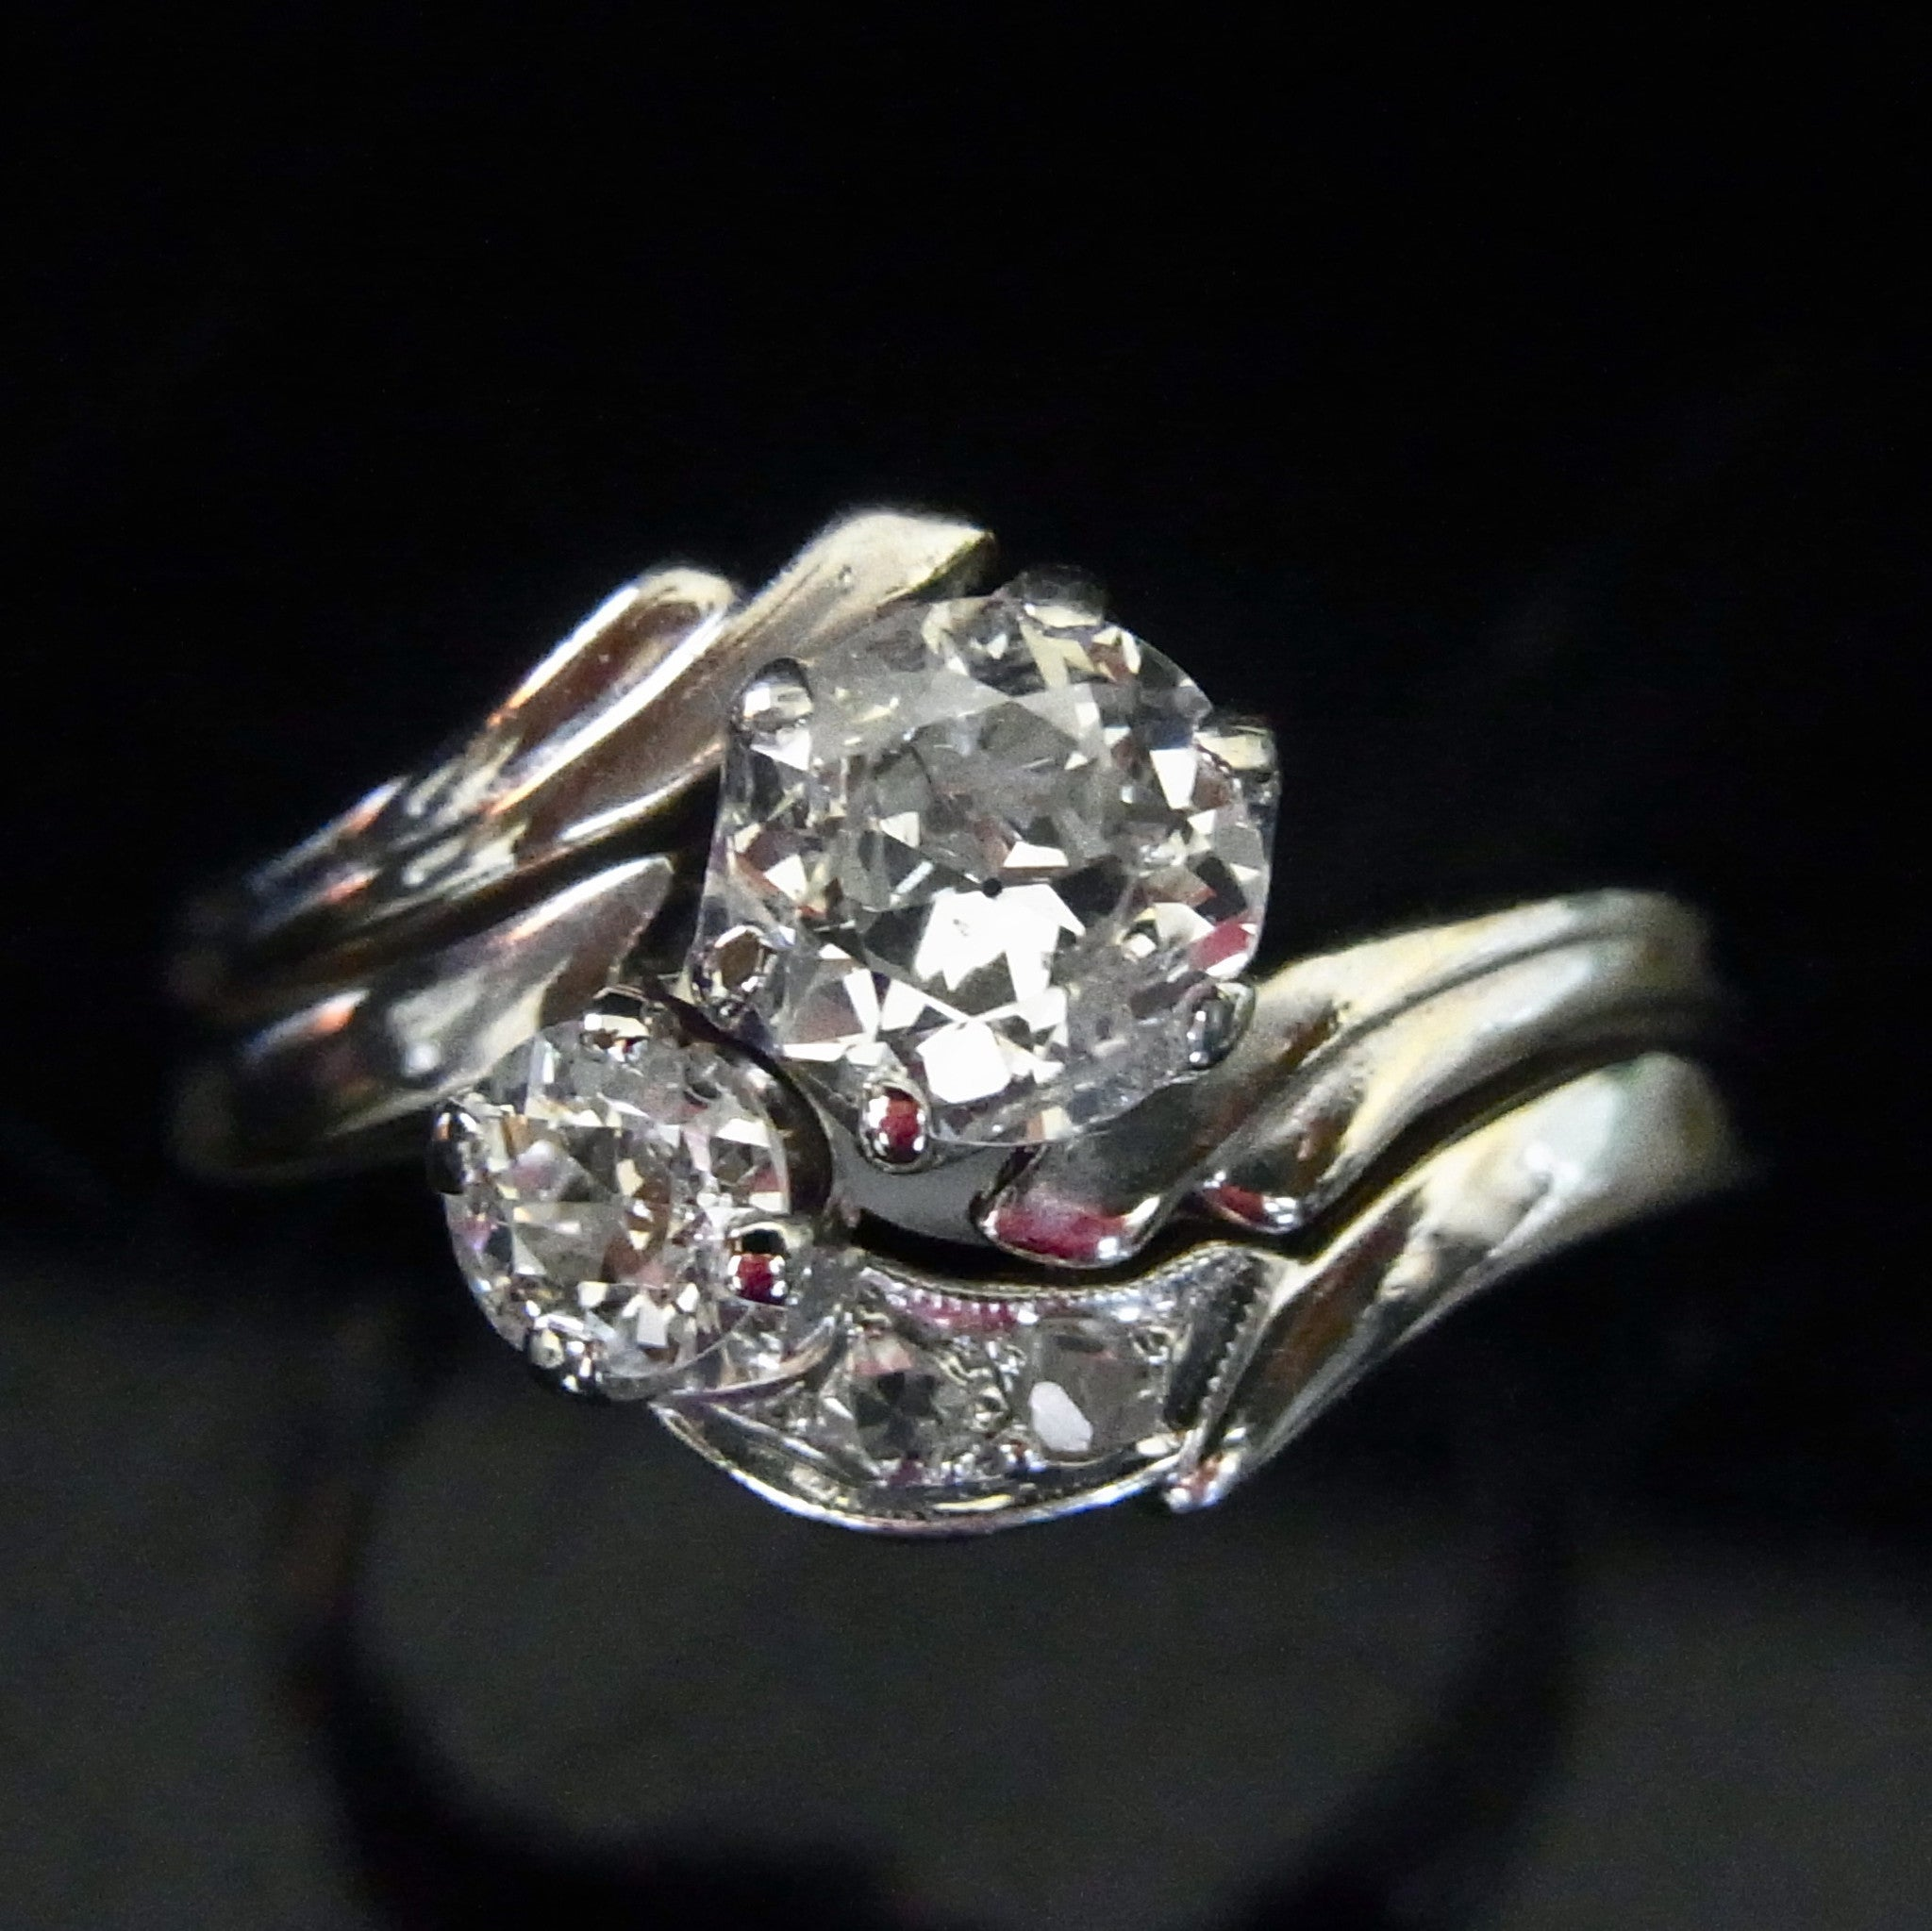 scintillation nbc diamonds red engagement news jewelry blog page star articles pink ritani ring all diamond